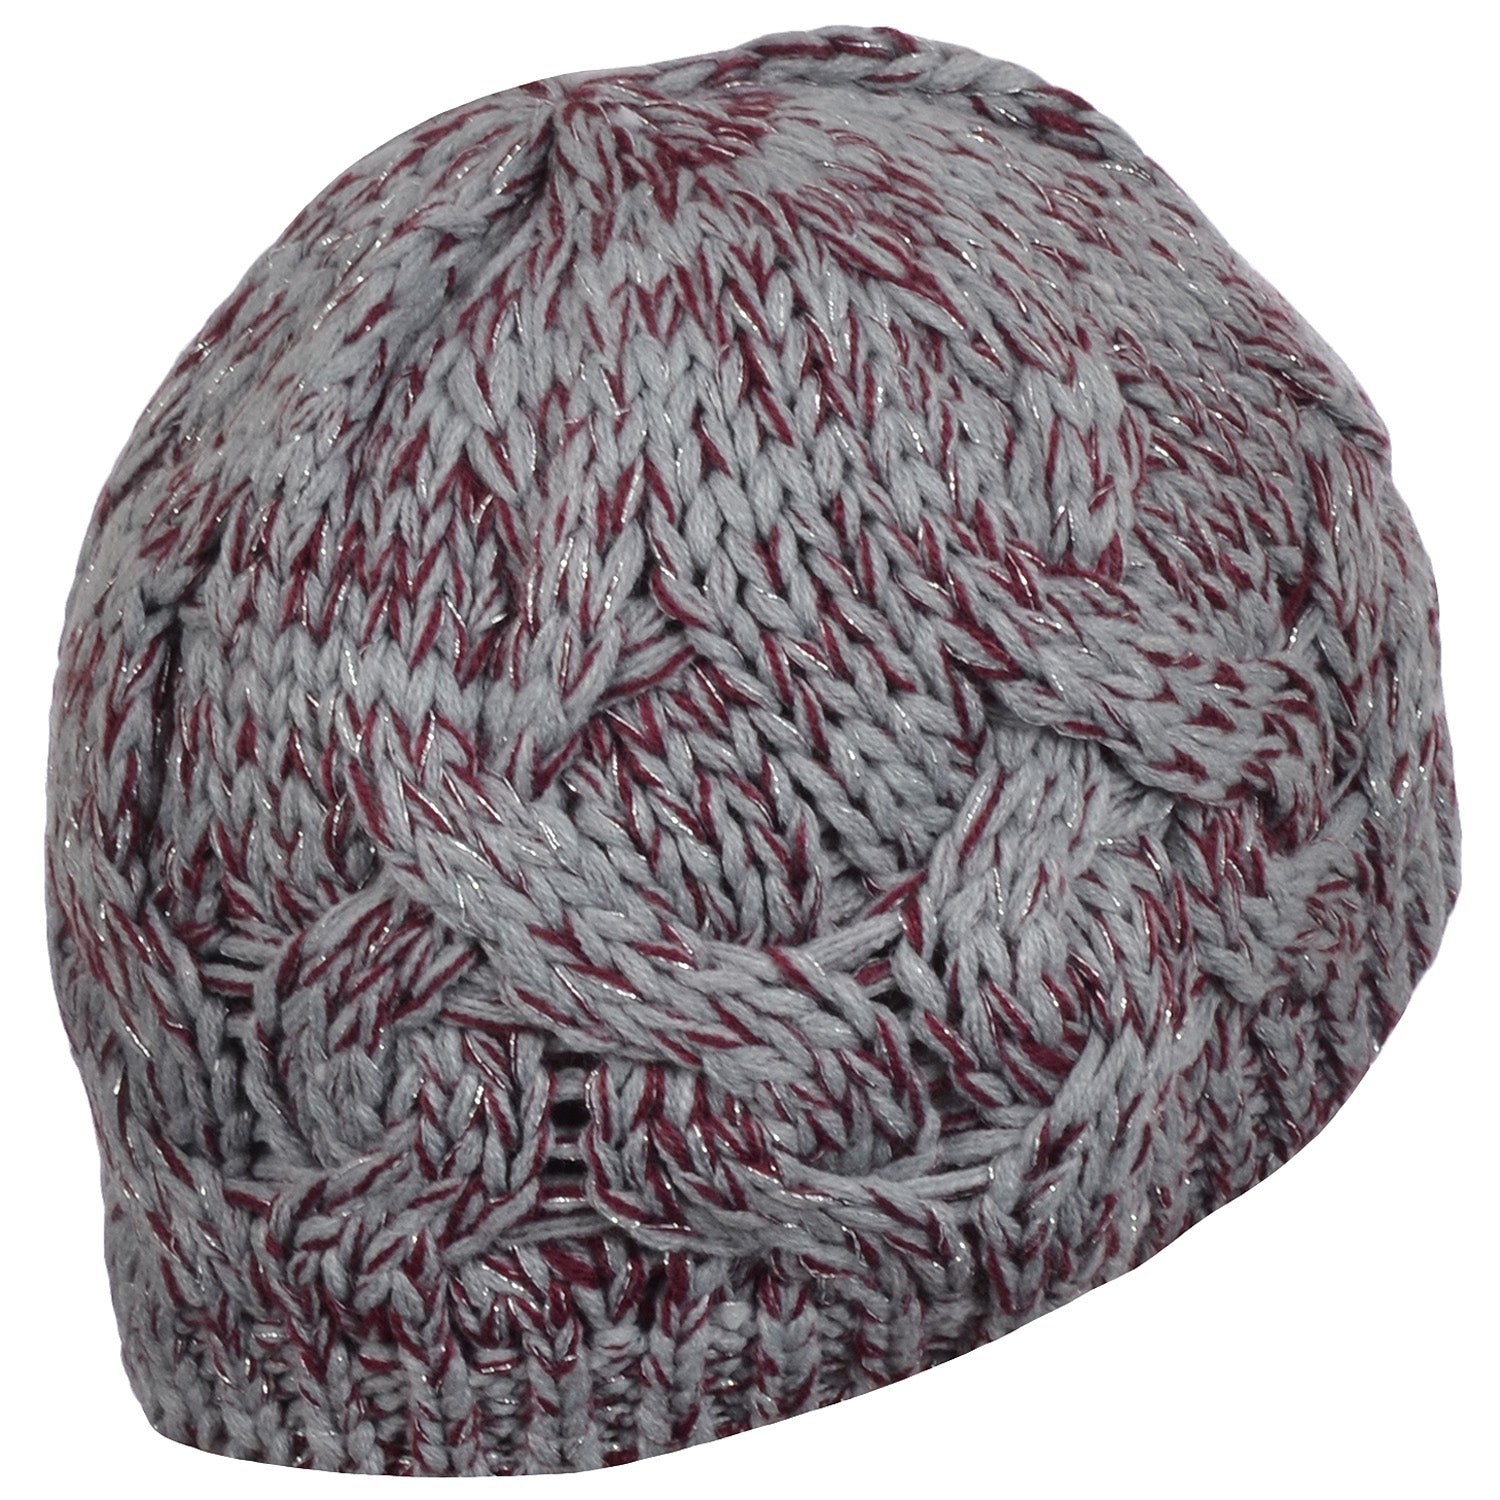 63ad8bde3cf Last 26 x adidas NEO Womens Chunky Cable Knit Warm Berets (M65888) rrp£ ...